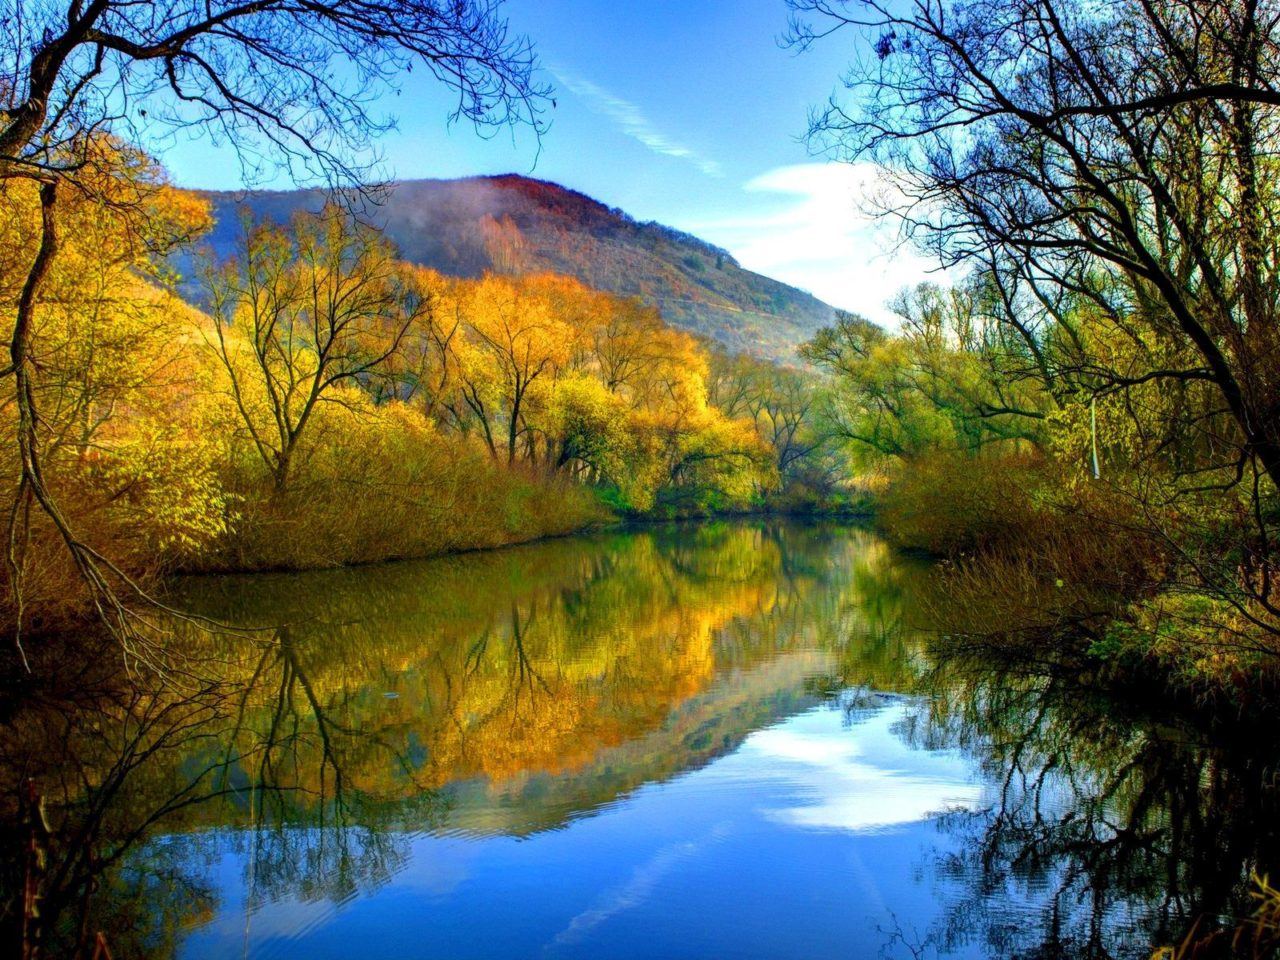 Fall Wallpaper For Tablet Fall River Peaceful Water Willow With Yellow Leaves Blue